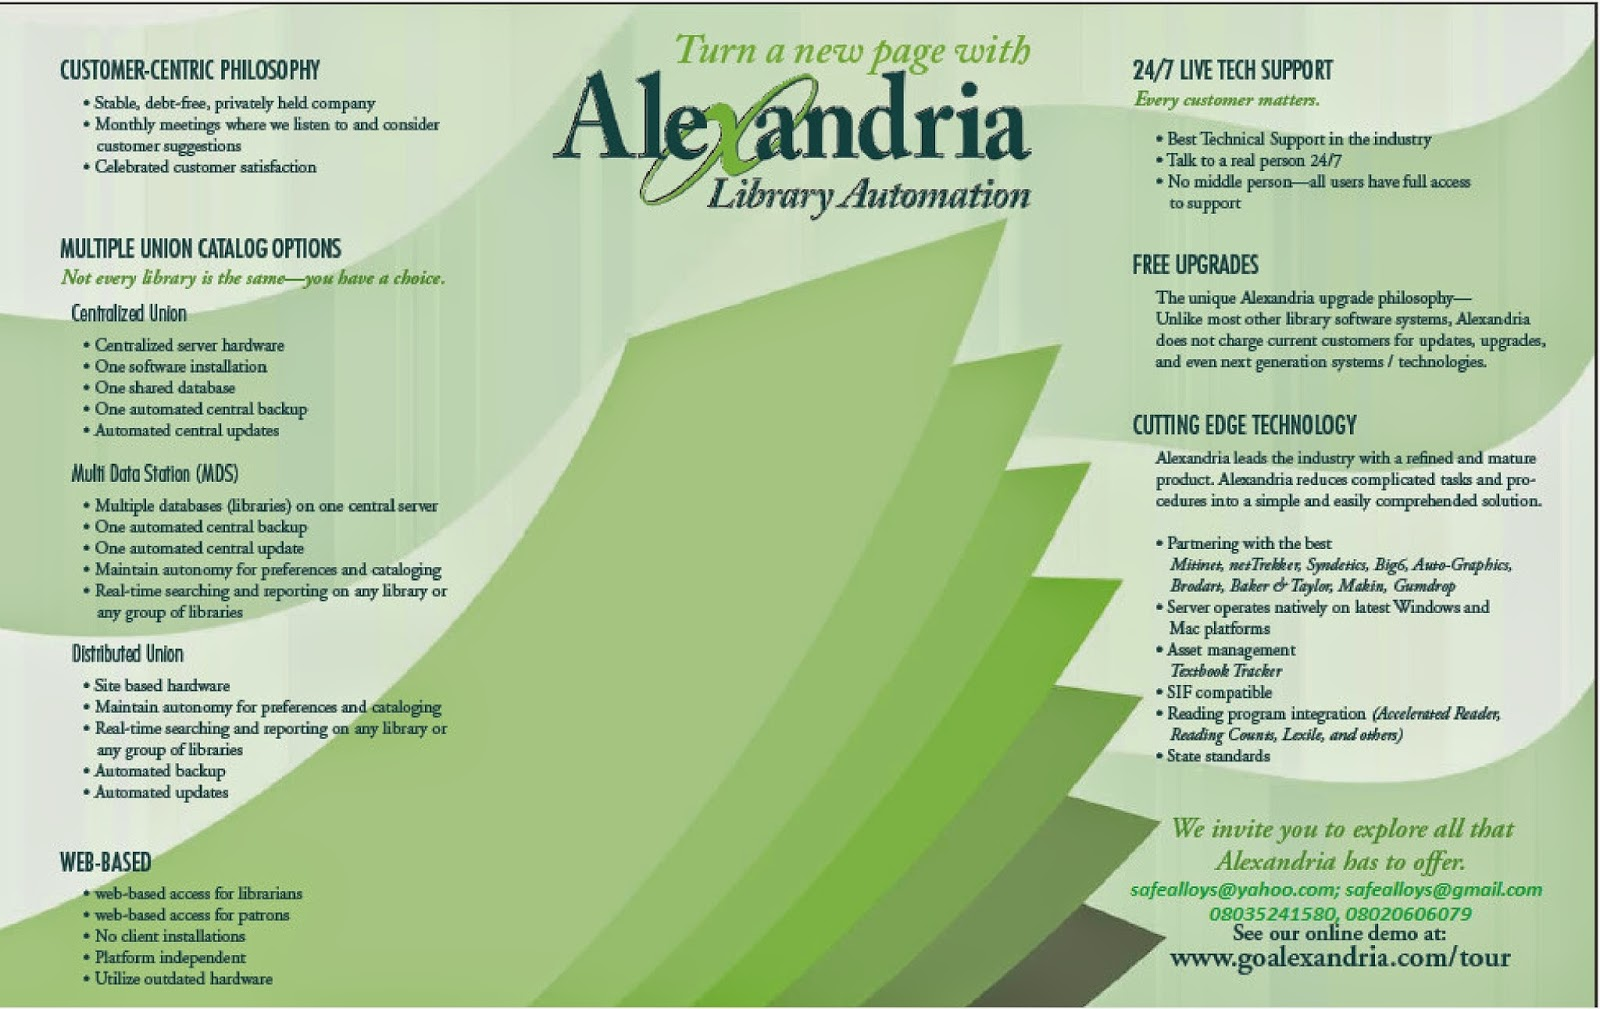 Nla Information Technology Section Alexandria Library Automation Software